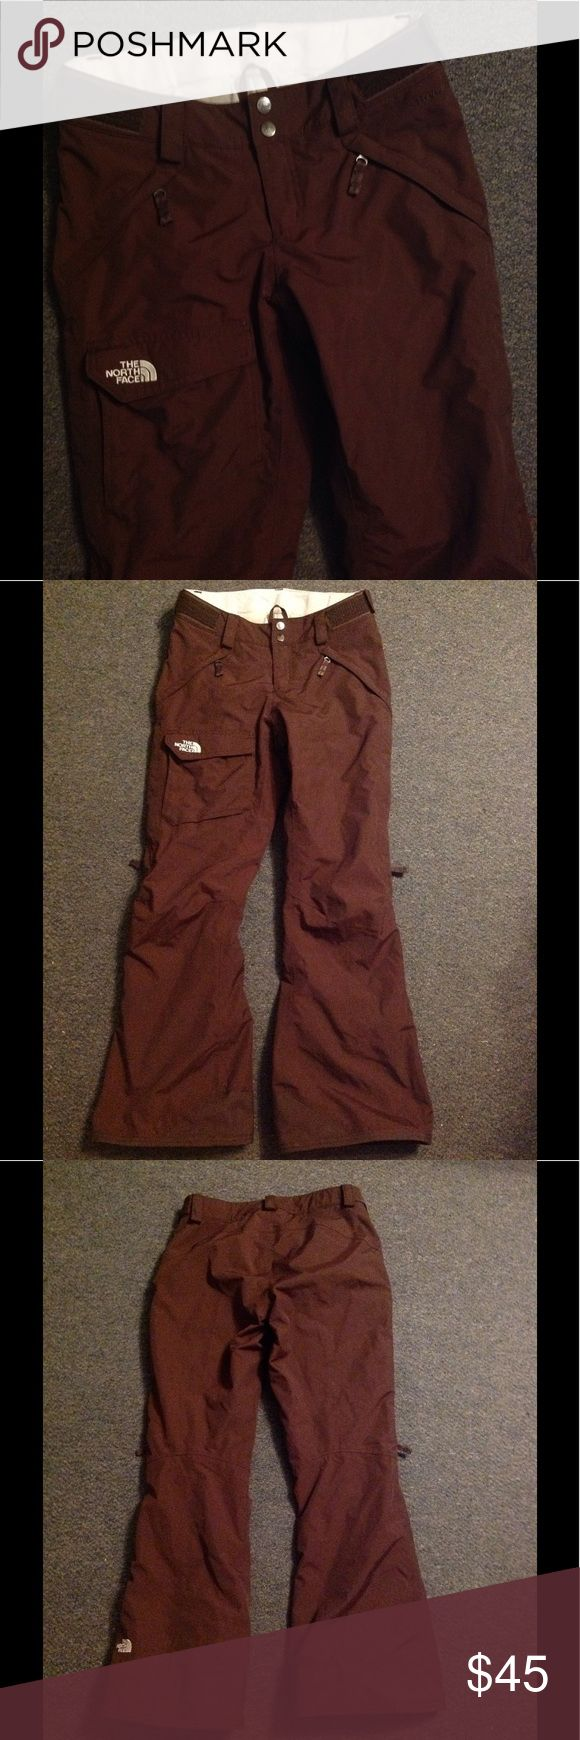 "North Face Brown Hyvent Ski/SnowBoard Pants XS Nice pair of North Face ski/snowboard pants. Made of nylon and insulated. Marked size XS. Waist measures about 30"" and has Velcro to make smaller - Inseam 30"". Only used for 1 ski weekend. No flaws. The North Face Pants"